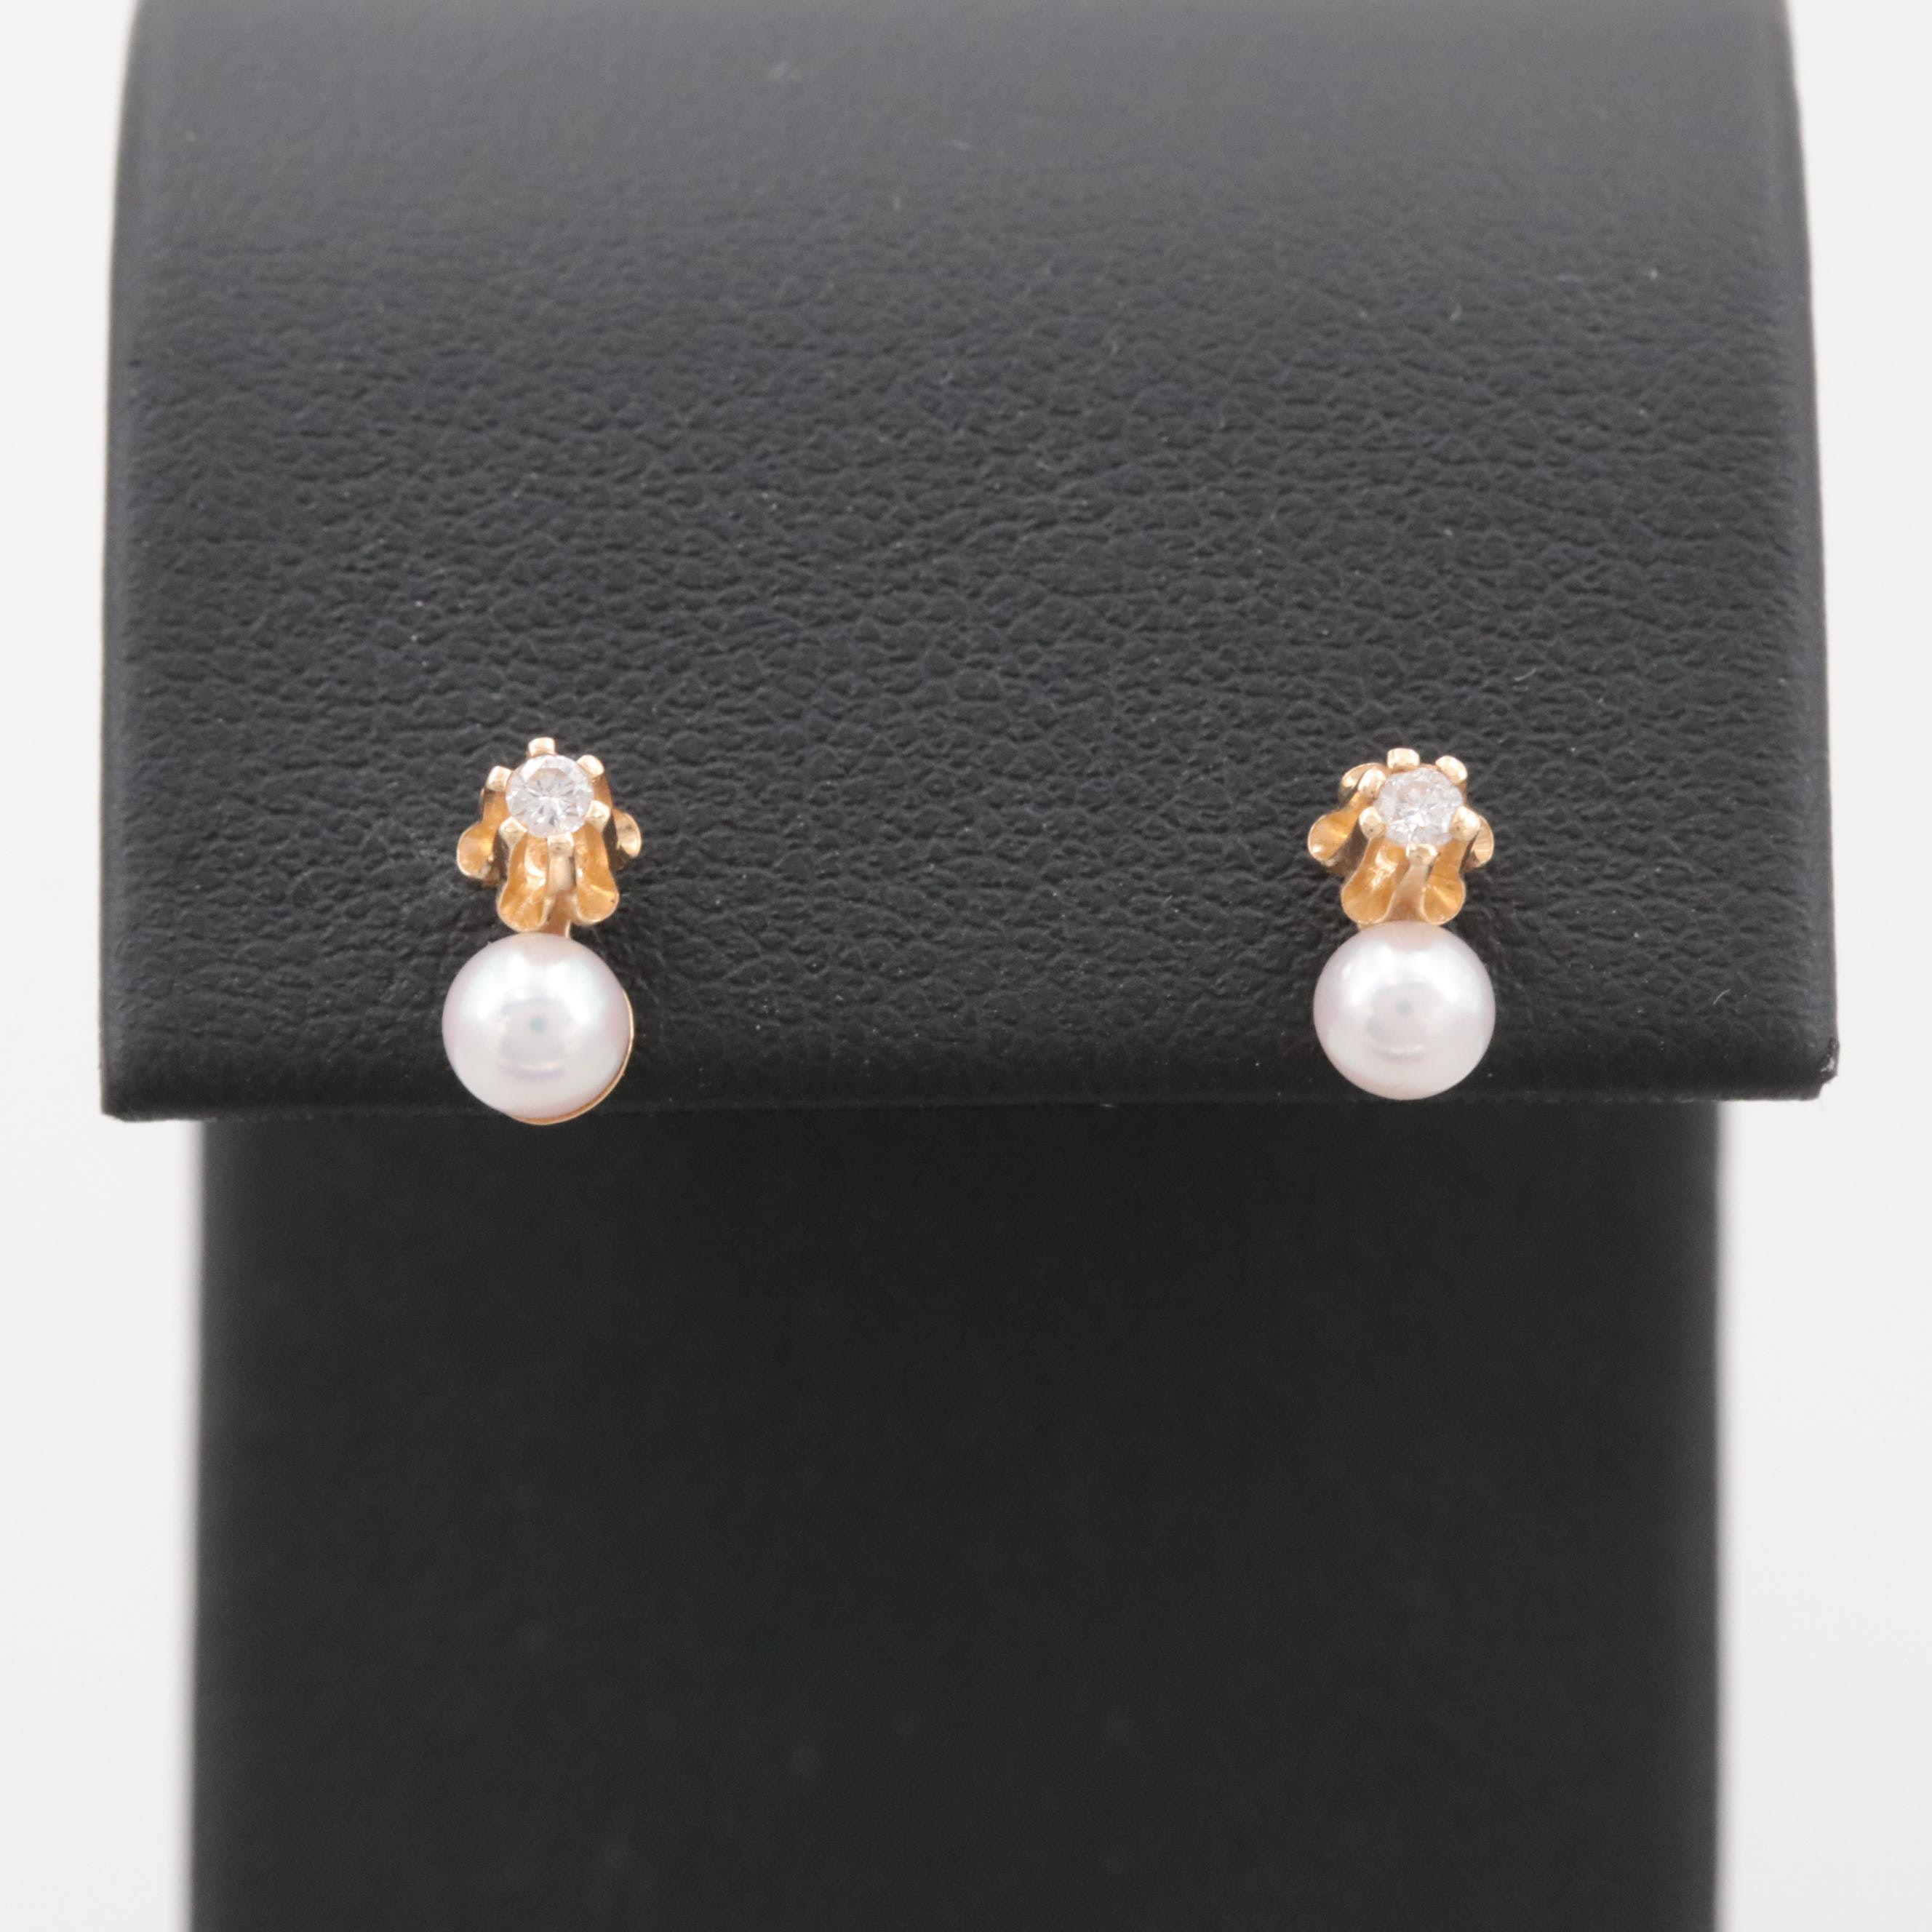 14K Yellow Gold Diamond Stud Earrings with Cultured Pearl Earring Jackets